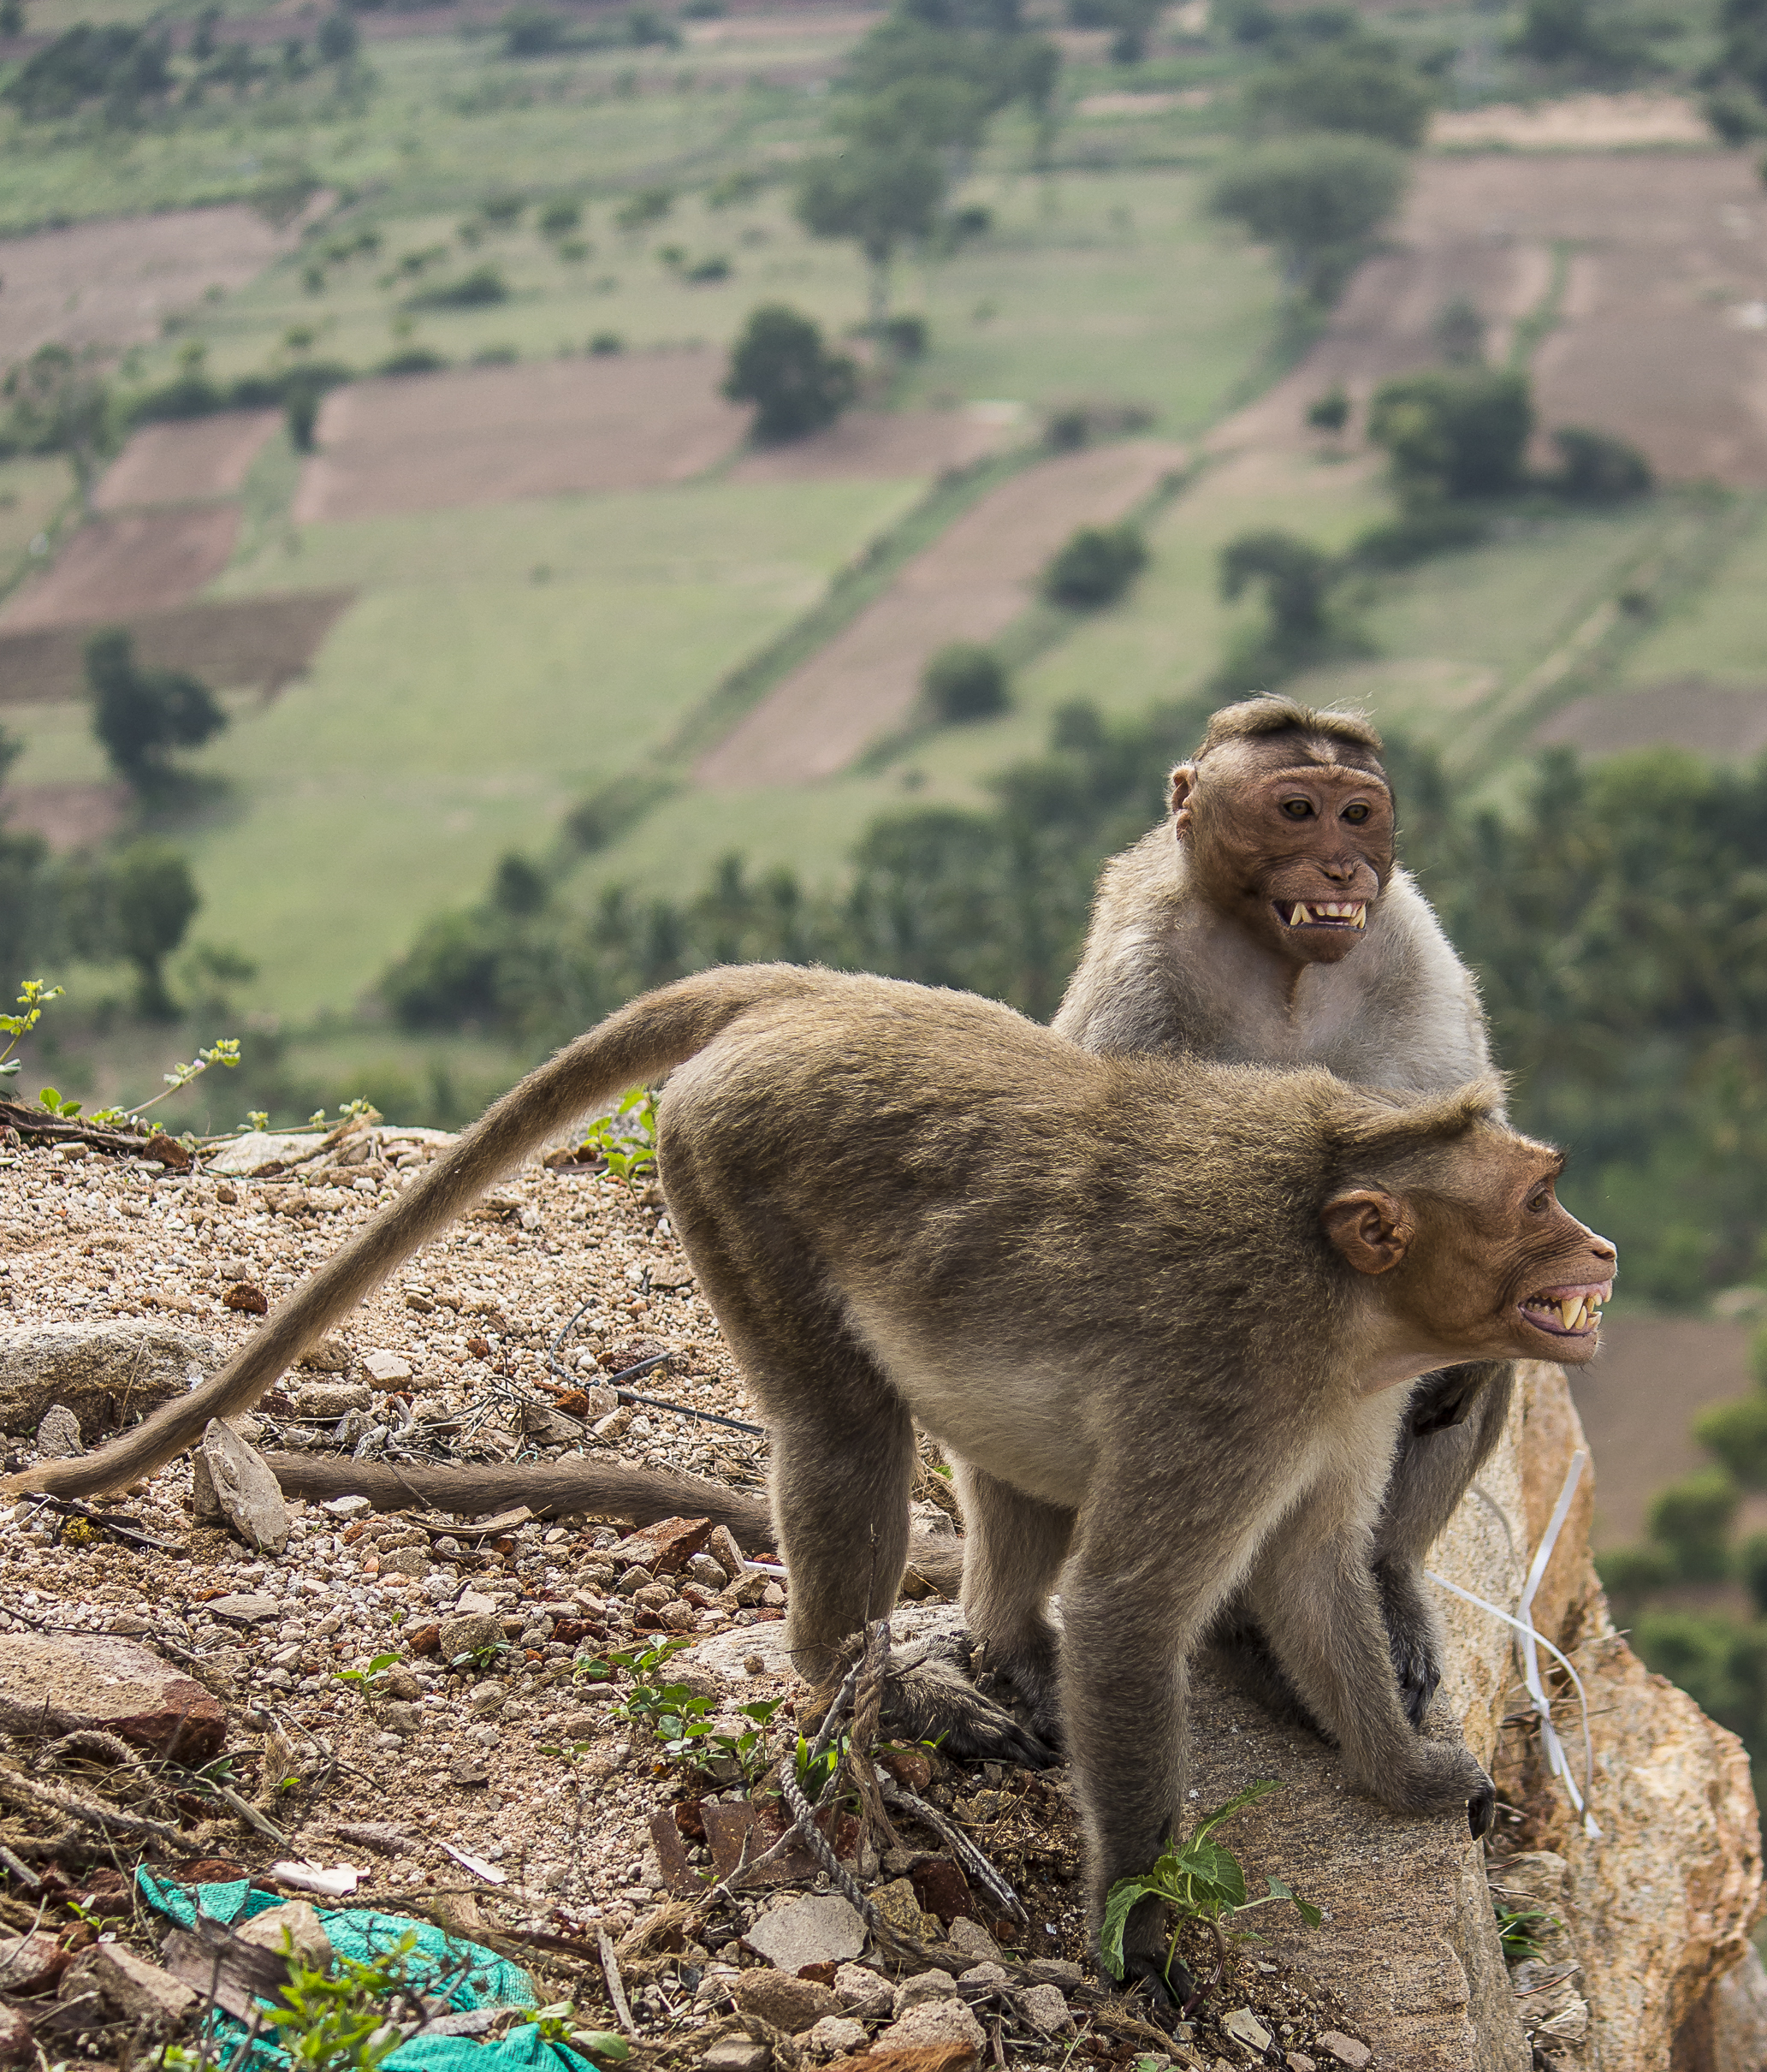 Bonnet macaque monkeys on a hill